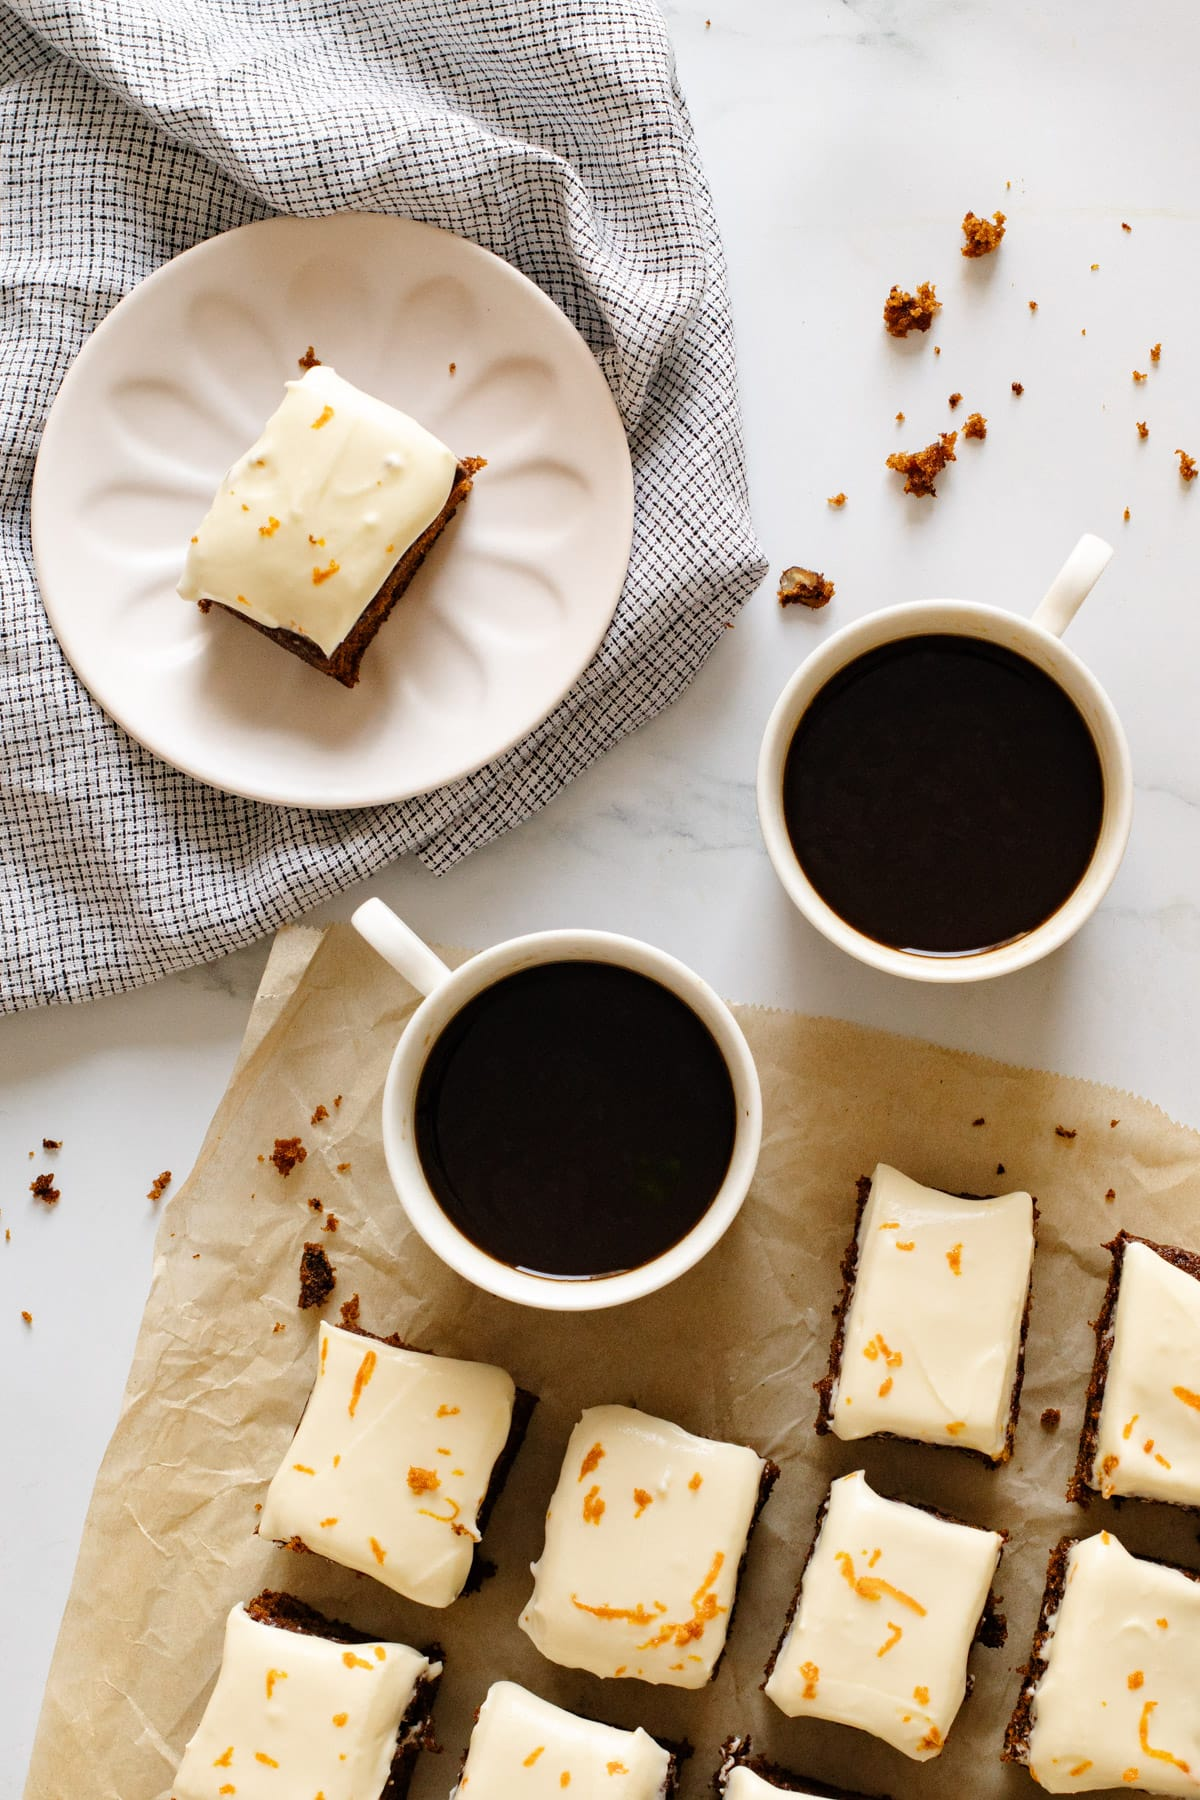 Carrot cake traybake on a plate with coffee cups